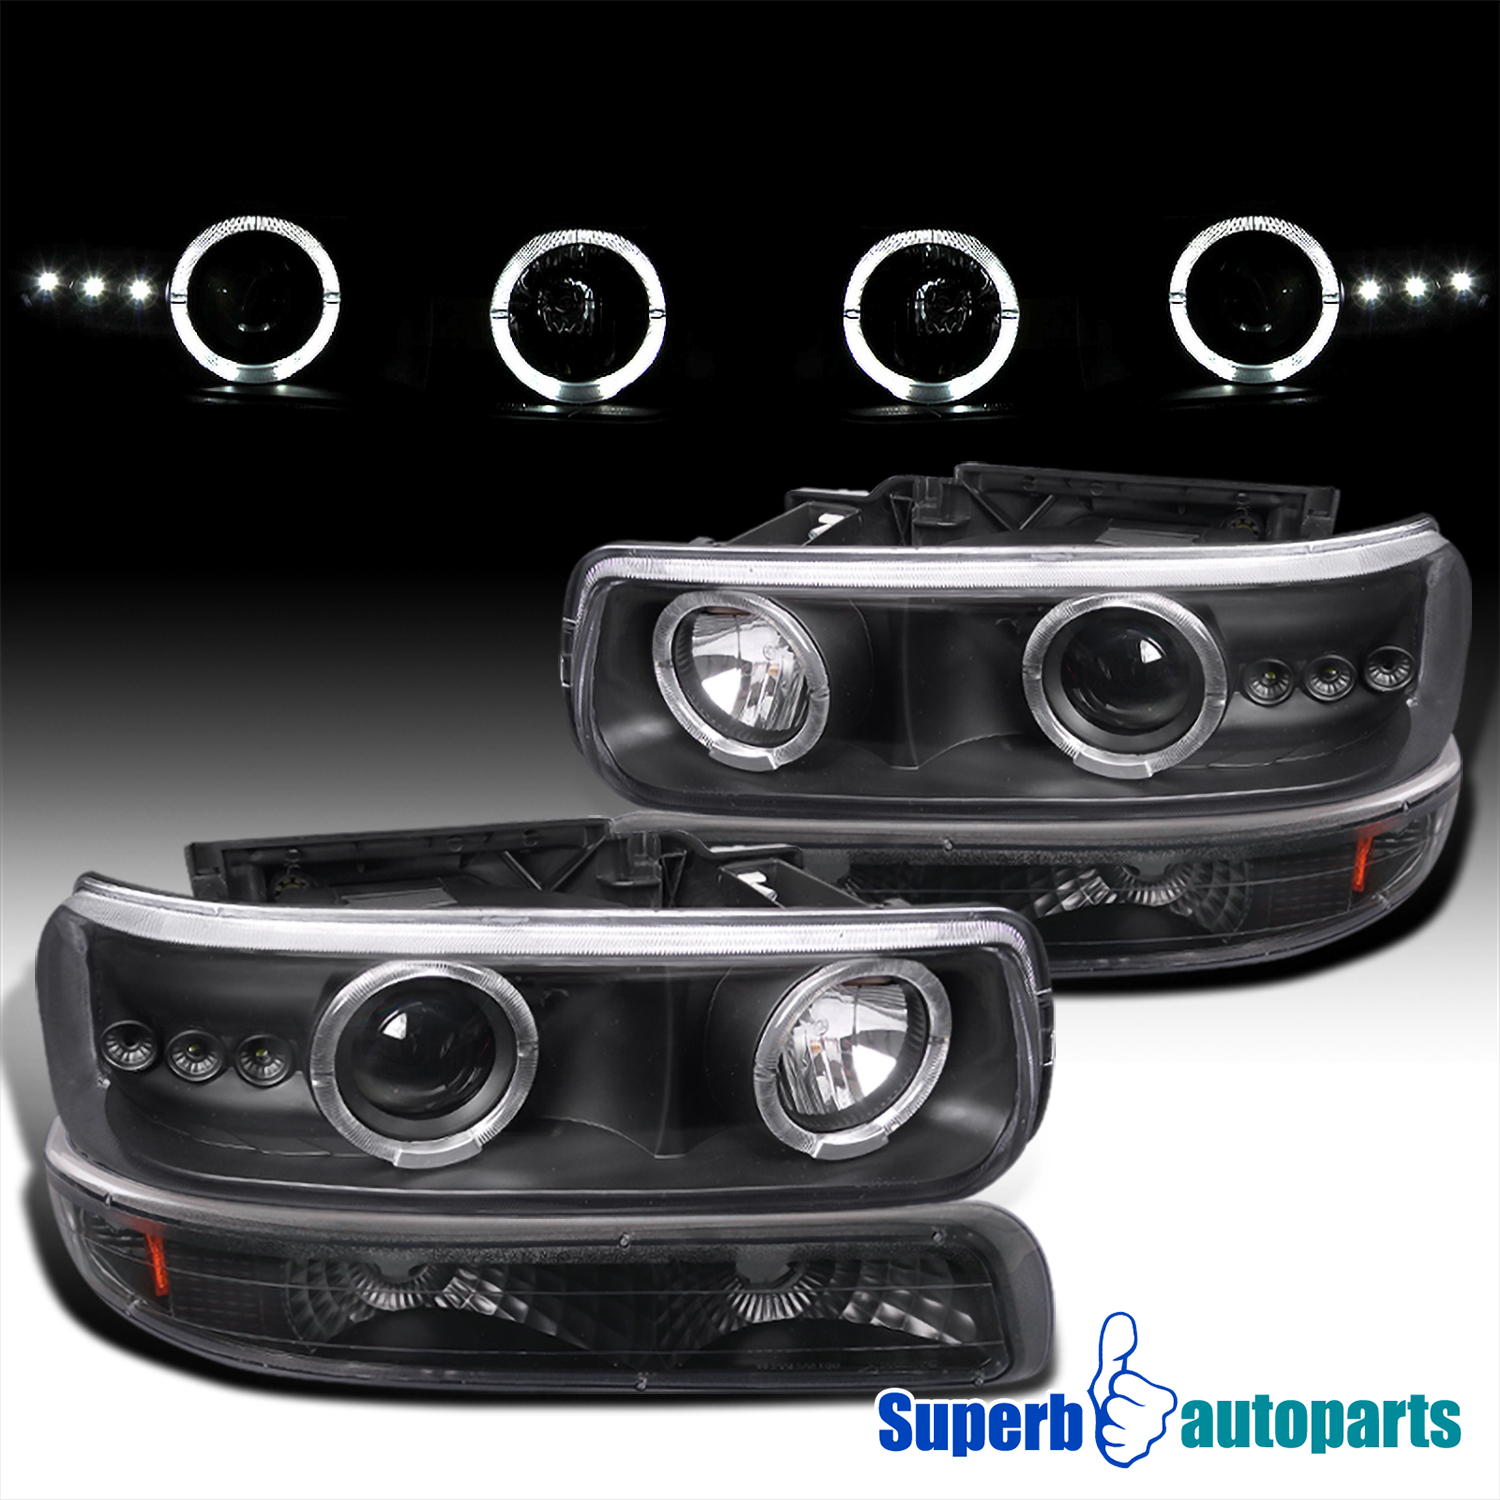 Chevy Silverado Halo Projector Headlights